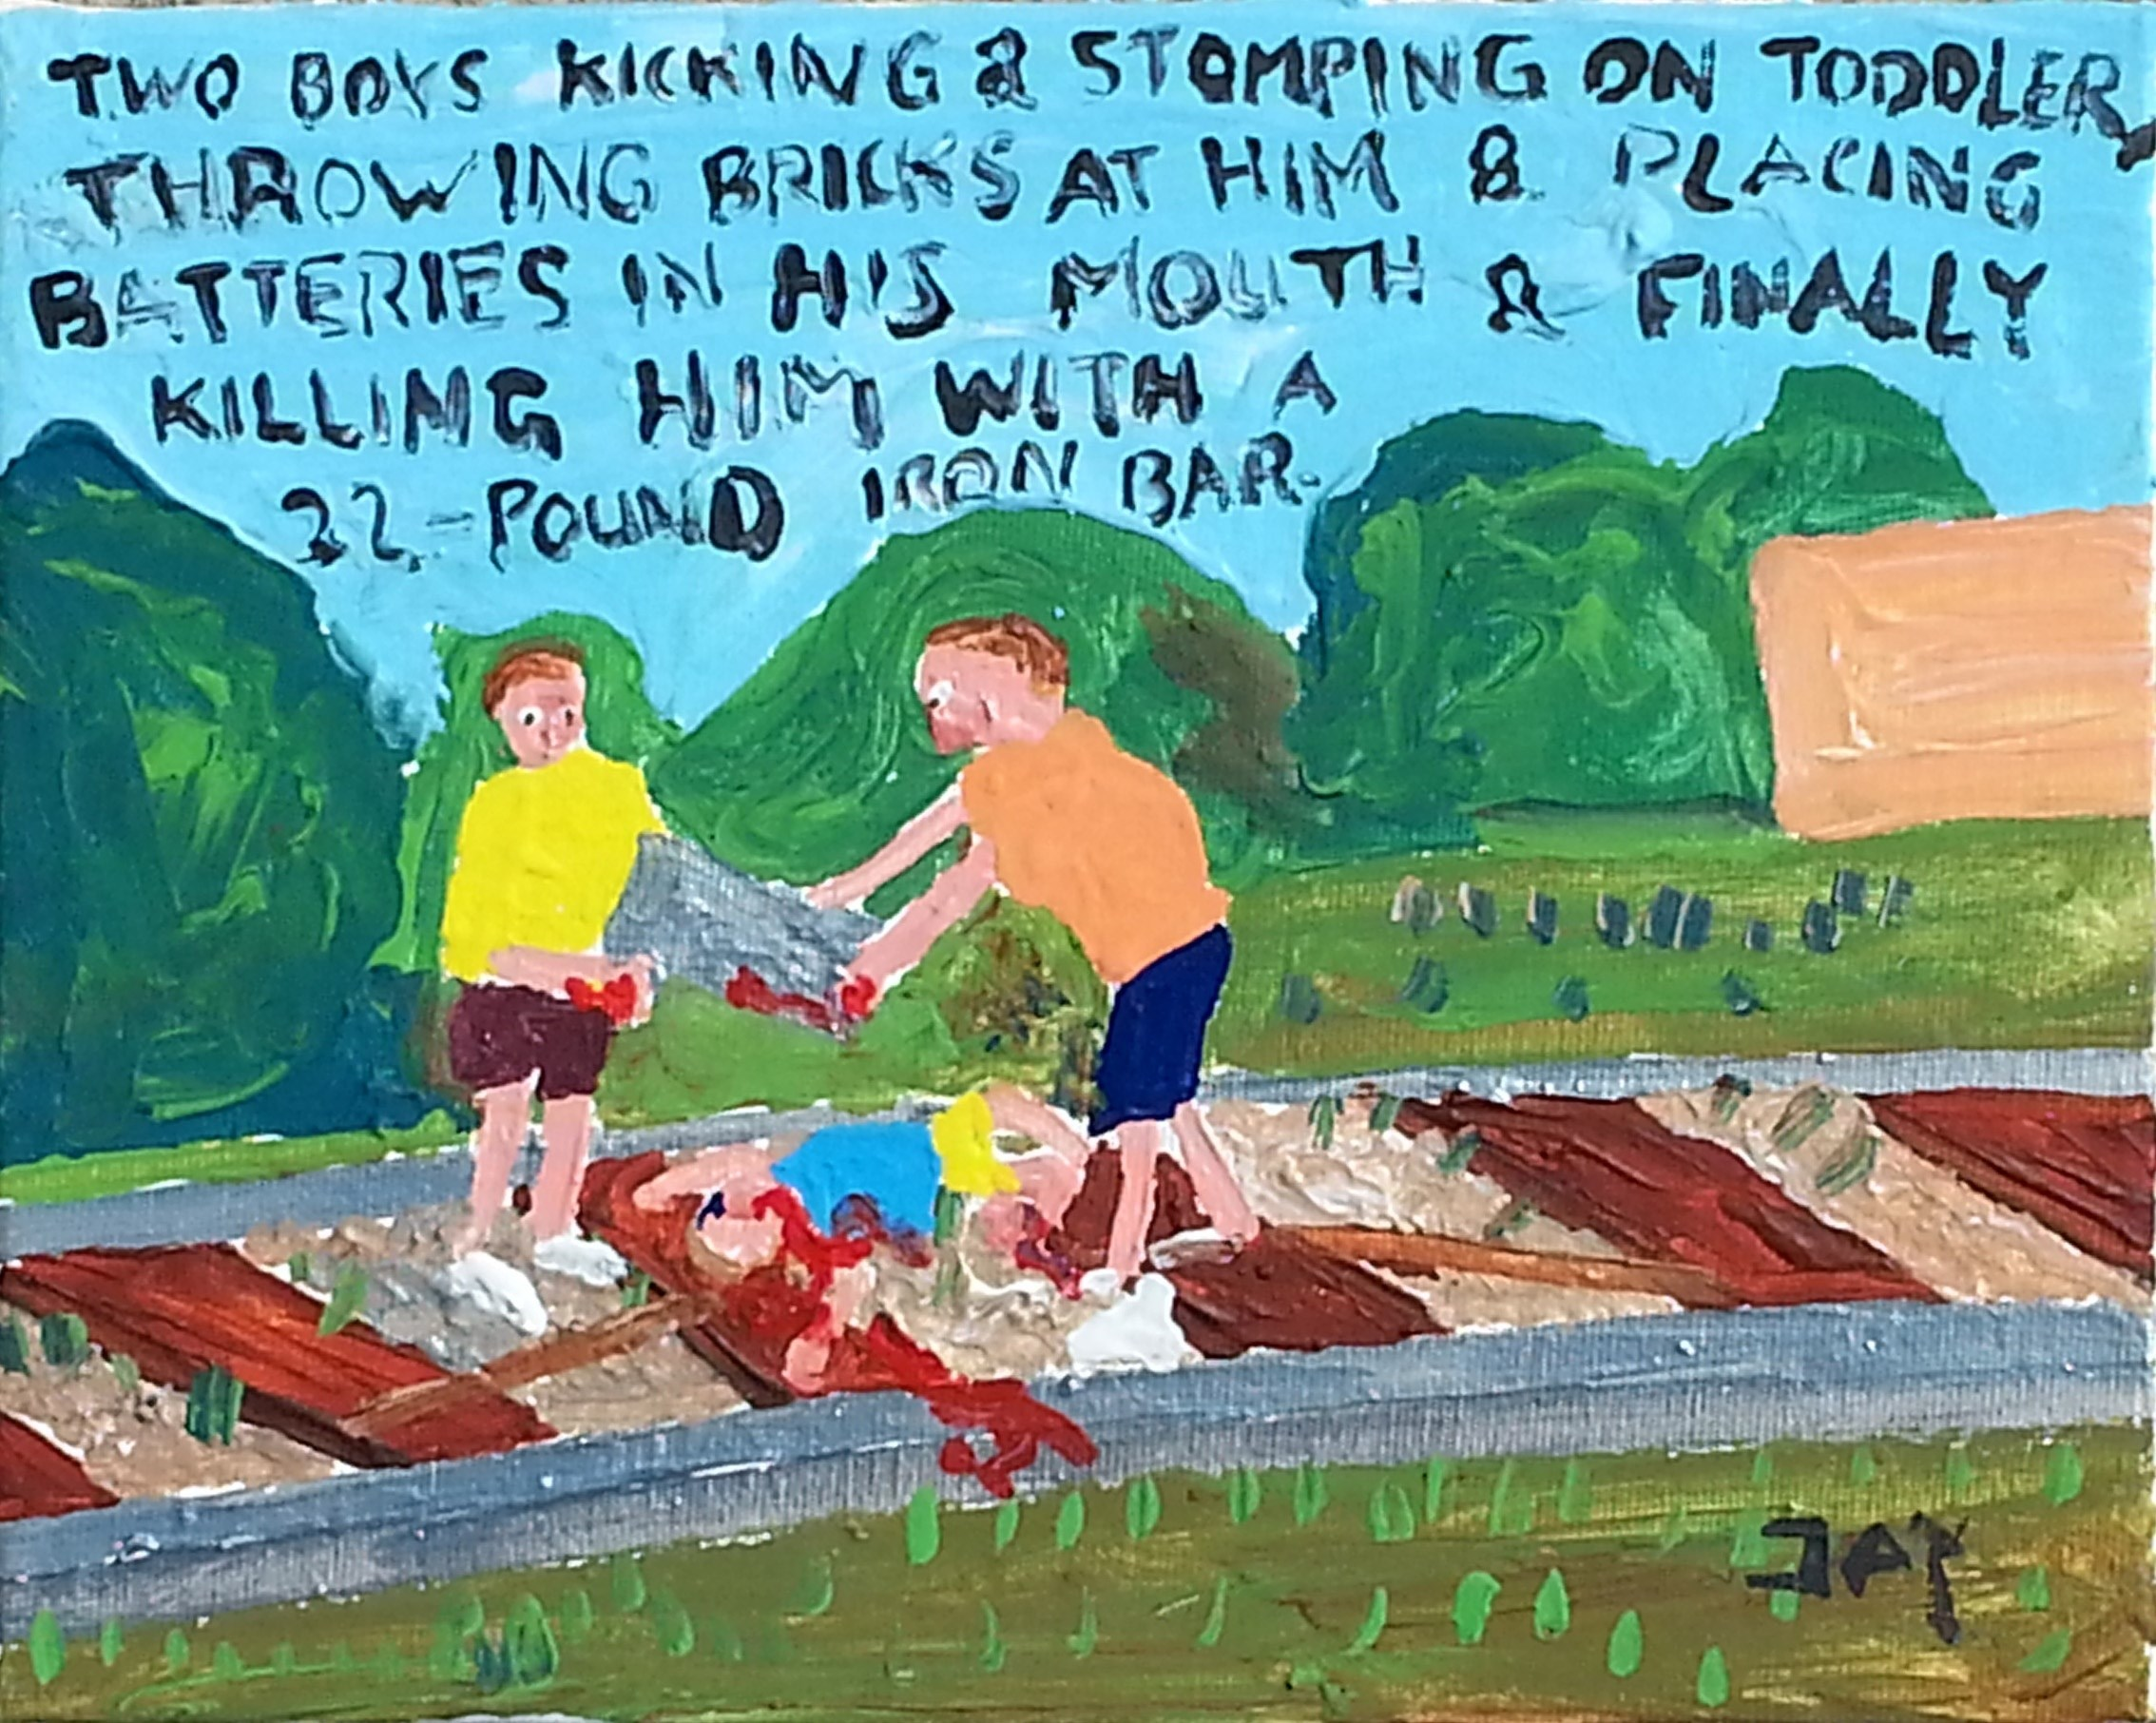 Bad Painting number 14: Two boys kicking and stomping on toddler, throwing bricks at him & placing batteries in his mouth & finally killing him with a 22 pound iron bar, original Body Acrylic Painting by Jay Rechsteiner